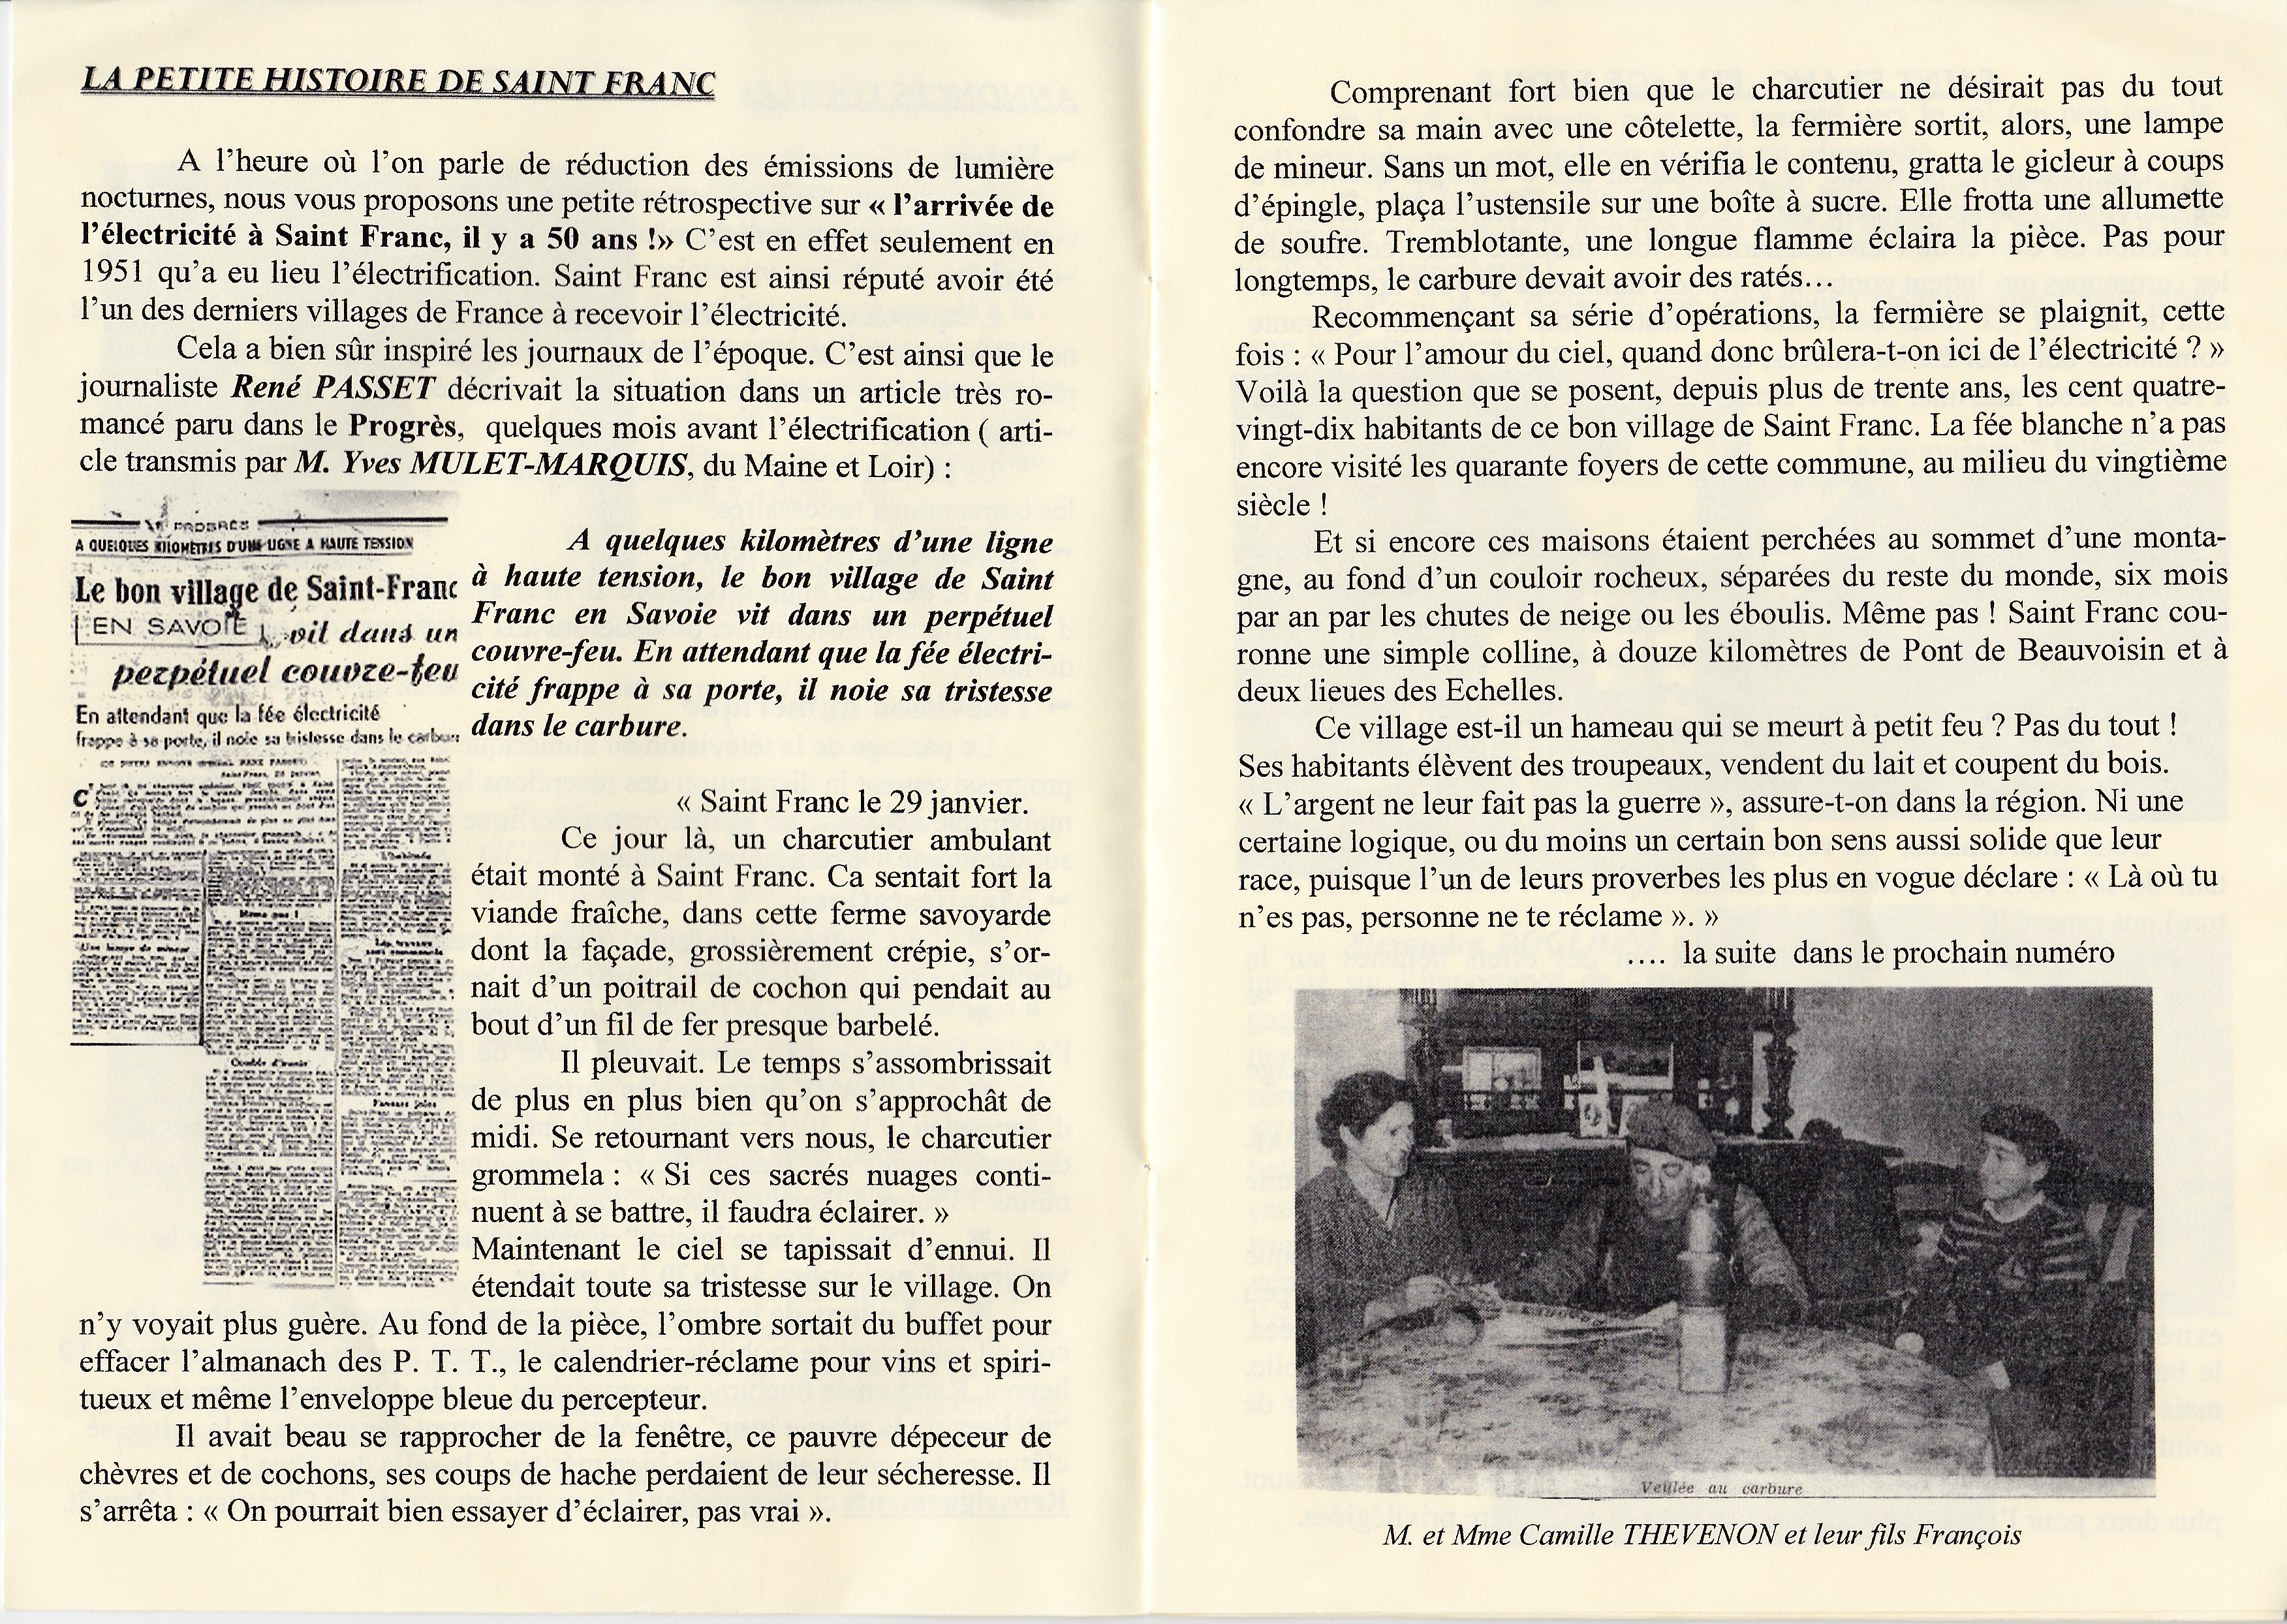 LPS n° 7 - Pages 4 & 5